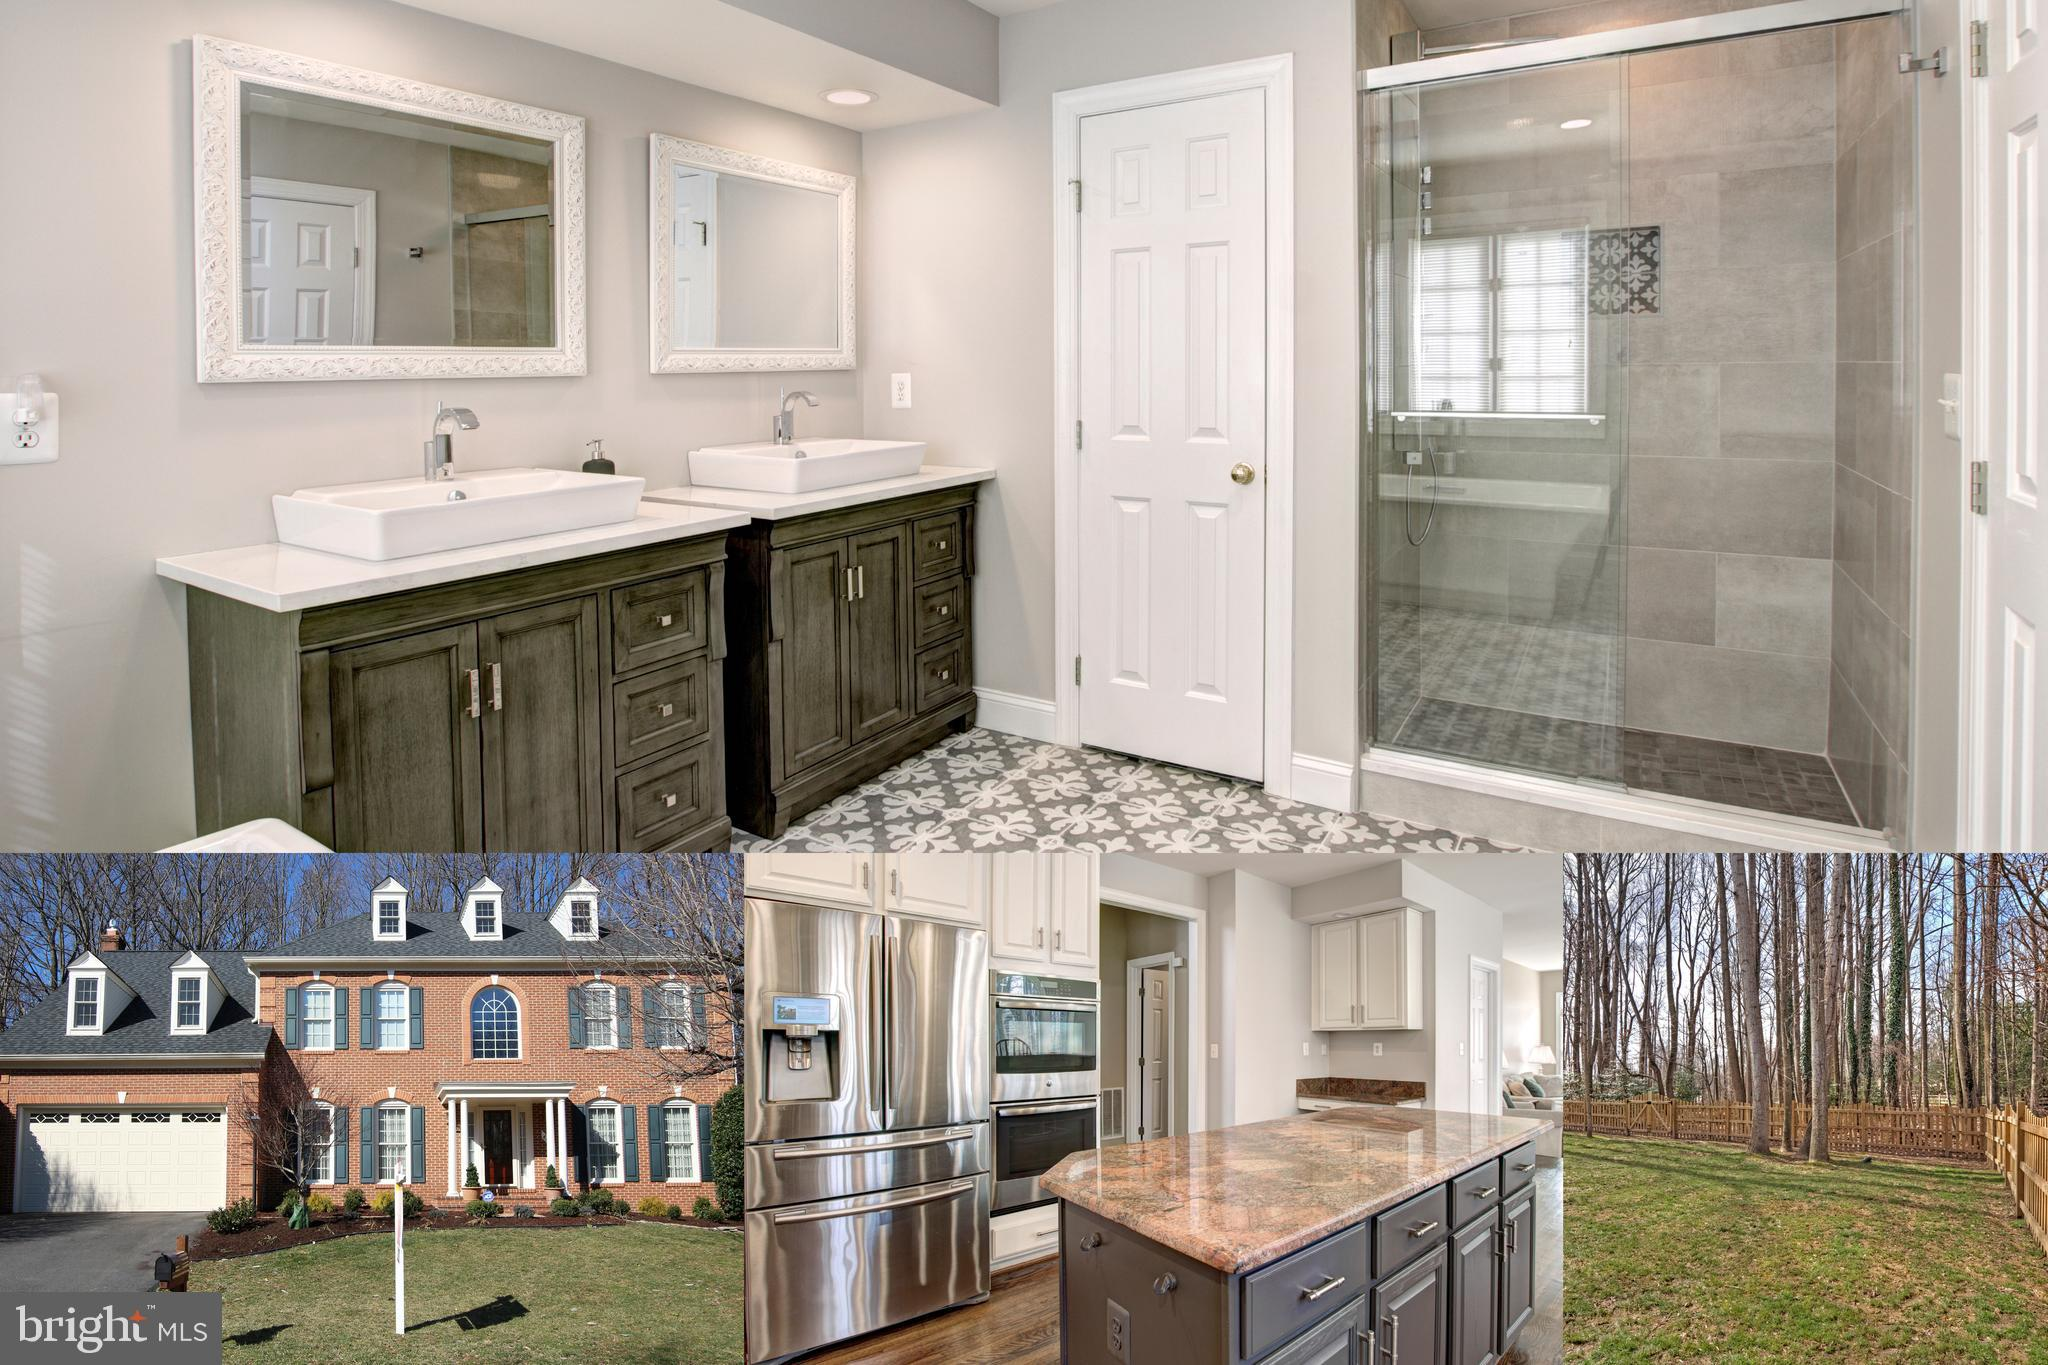 Wow! Fully finished 3 level Colonial home with modern updates in the West Springfield School District with plenty of room for entertaining! A master suite with a stunningly renovated in 2018 that will wow you!Gourmet kitchen is a Chef~s delight, with GE profile double wall ovens, Kitchenaid gas cooktop, GE Avantium convection built in microwave, refrigerator with internet, music AND news, and large center island. You will really enjoy the sunroom off the eat in kitchen with wooded views and the deck off the back.Main level features a formal living and dining room with refinished hardwoods throughout. Cozy up next to two beautiful gas fireplaces, one in the family room and one in the lower level rec room. Other upgrades include a tankless hot water heater, replaced roof with oversized gutter, fully fenced in backyard, high efficiency dual zone Trane HVAC and many many more!